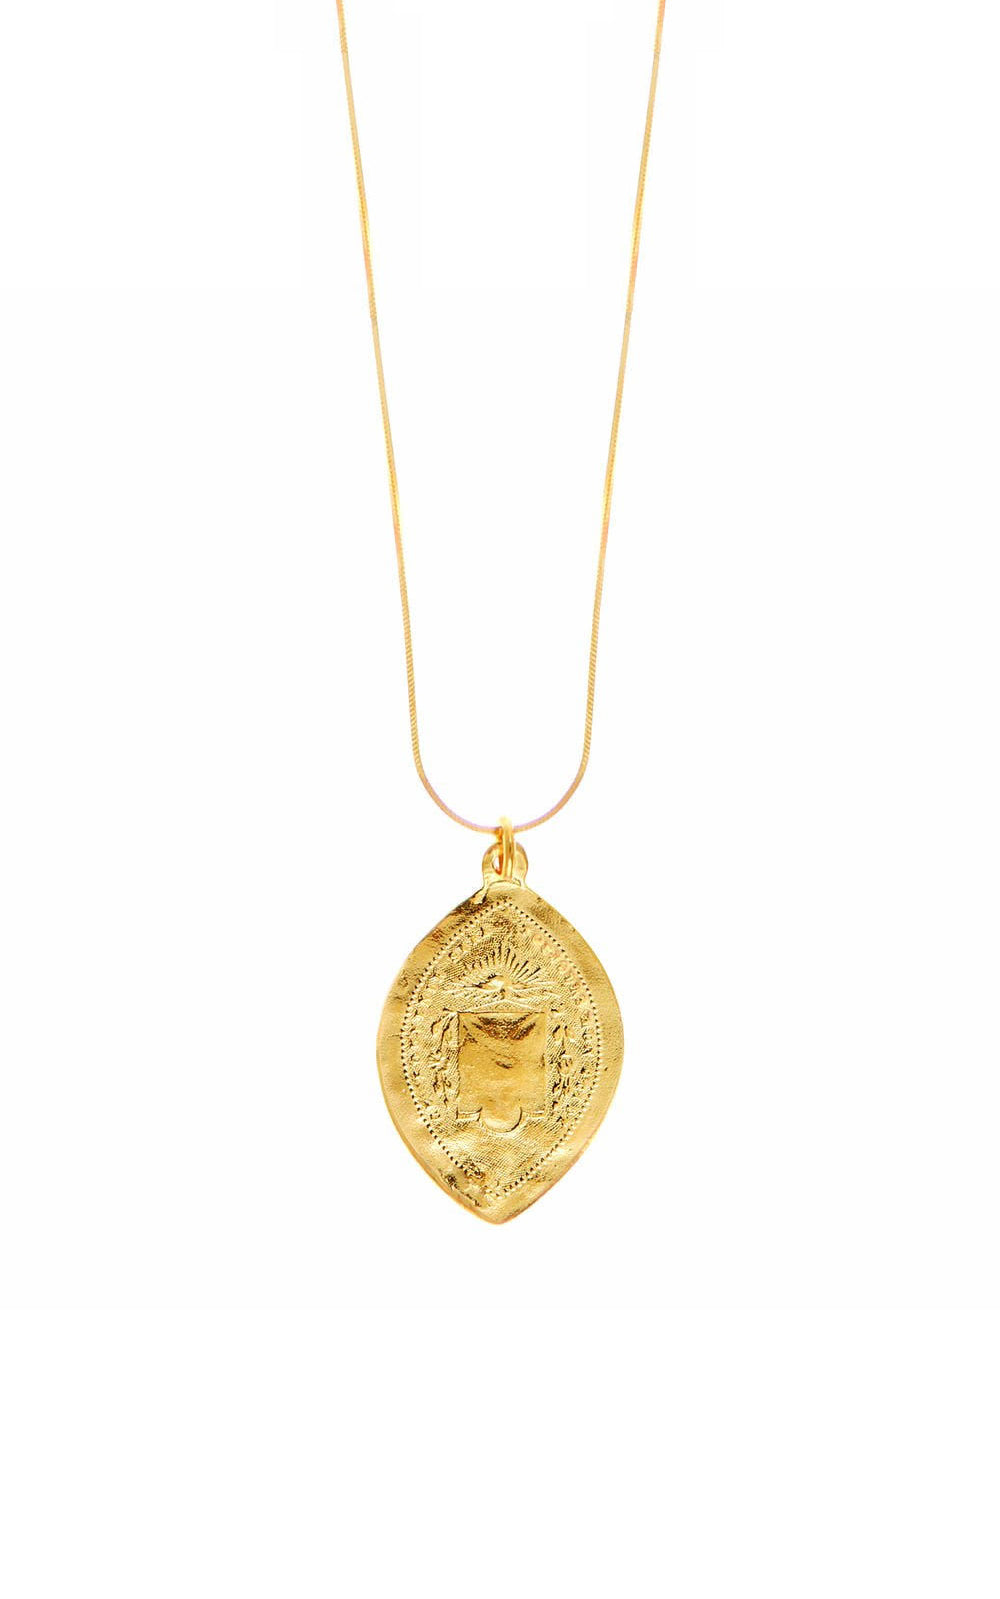 Carrie Elizabeth 14k Gold Vermeil Pendant Necklace